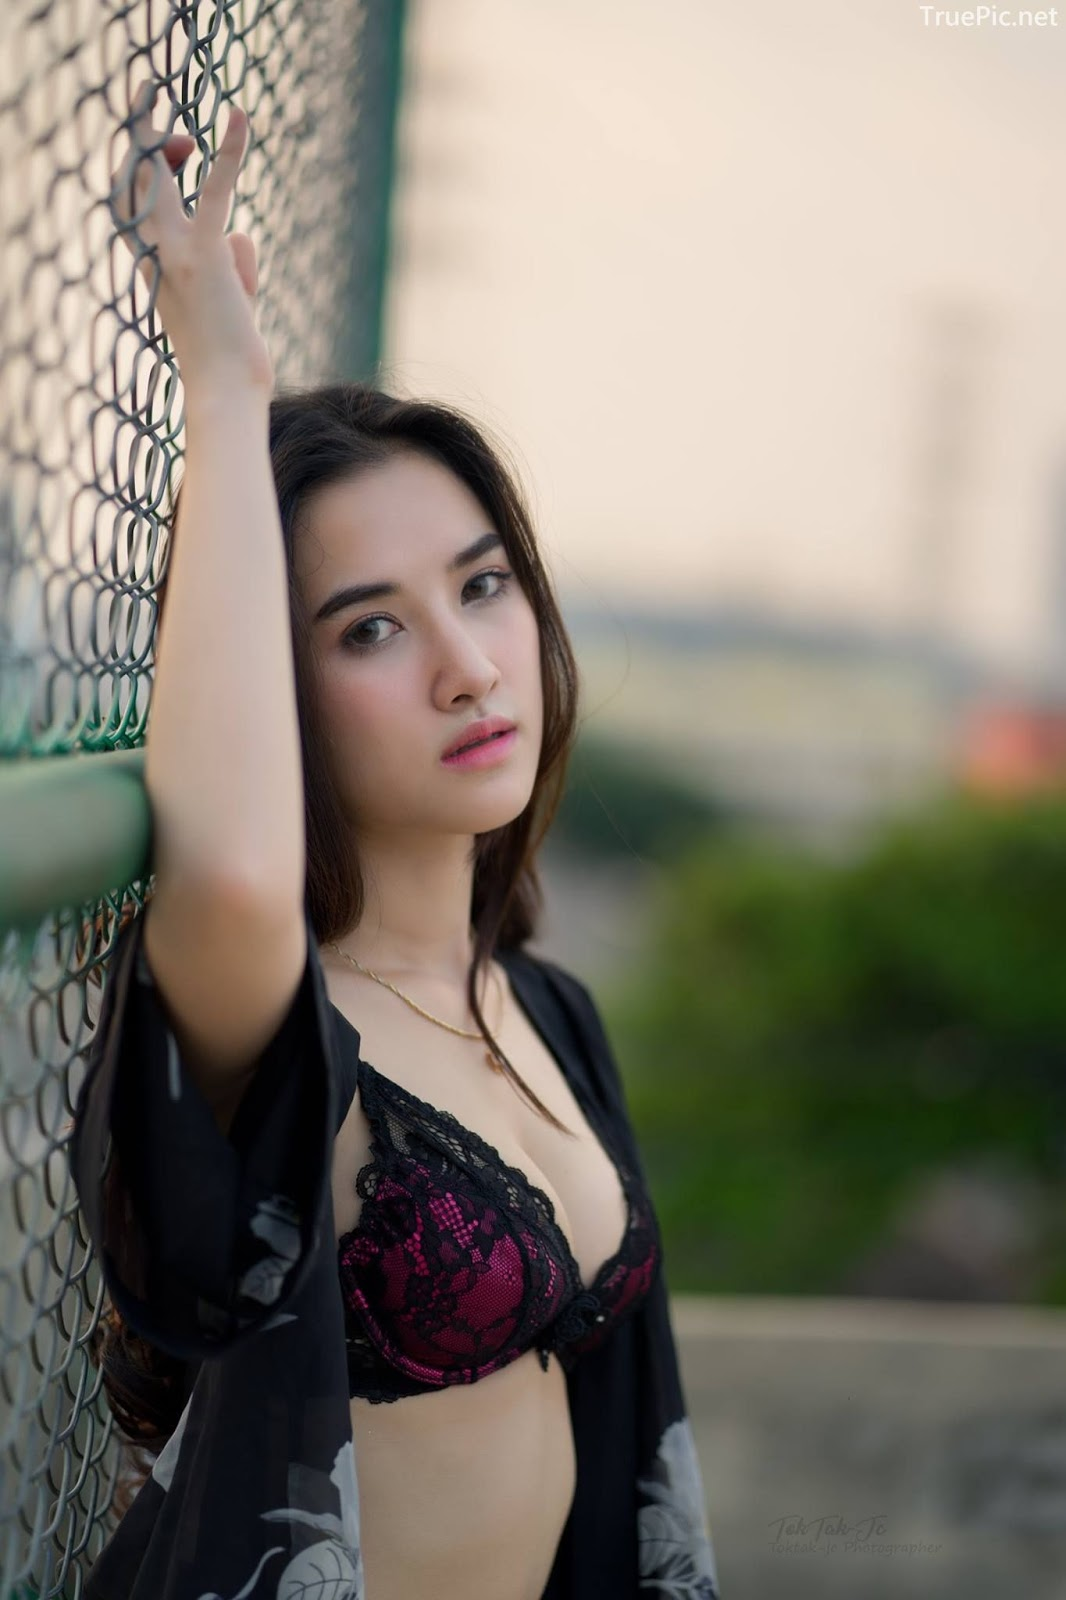 Thailand sexy angel Ploywarin Tippakorn - Black-pink bra and jean on sunset - Picture 3